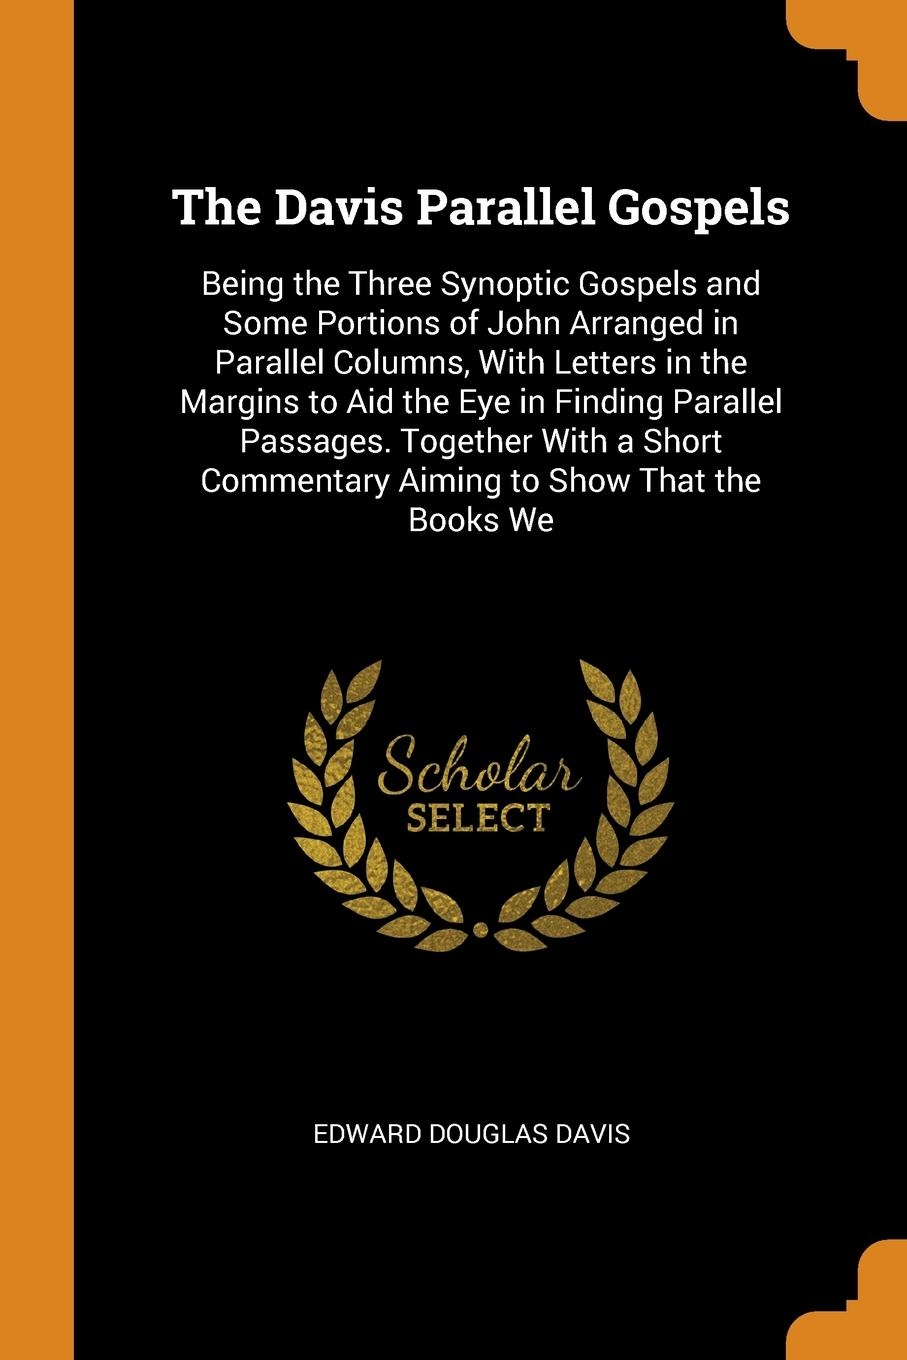 Edward Douglas Davis The Parallel Gospels. Being the Three Synoptic Gospels and Some Portions of John Arranged in Columns, With Letters Margins to Aid Eye Finding Passages. Together a Short Commentary Aiming Show That ...